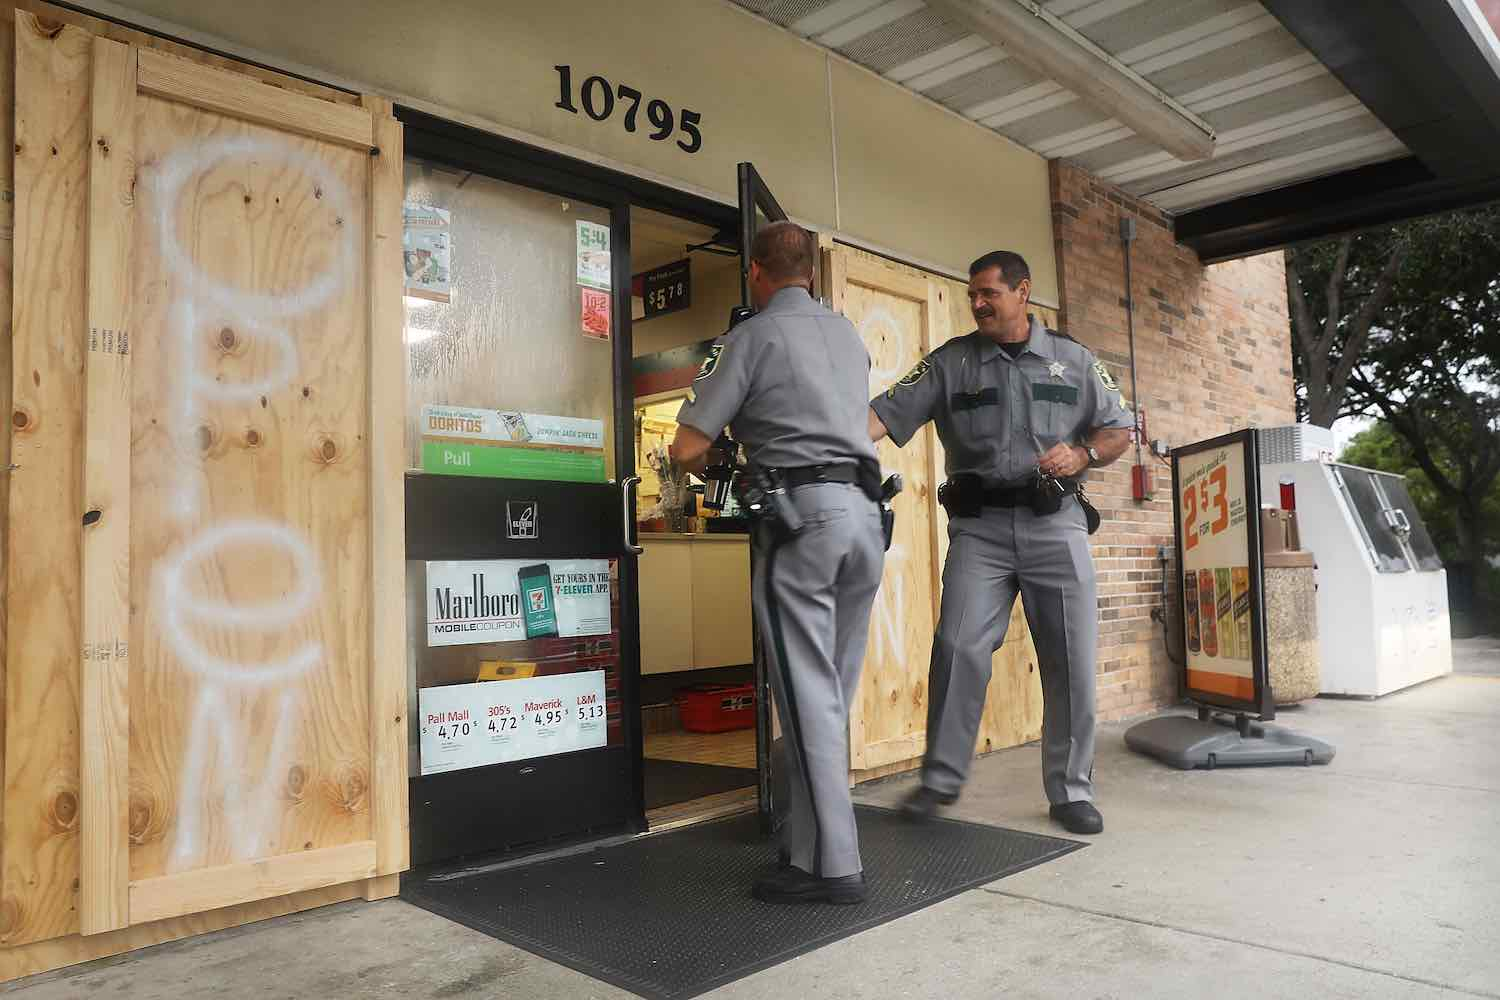 "<div class=""meta image-caption""><div class=""origin-logo origin-image kgo""><span>kgo</span></div><span class=""caption-text"">Police enter one the few remaining businesses open in Naples before the arrival of Hurricane Irma into Southwest Florida on September 9, 2017 in Naples, Florida.  (Spencer Platt/Getty)</span></div>"